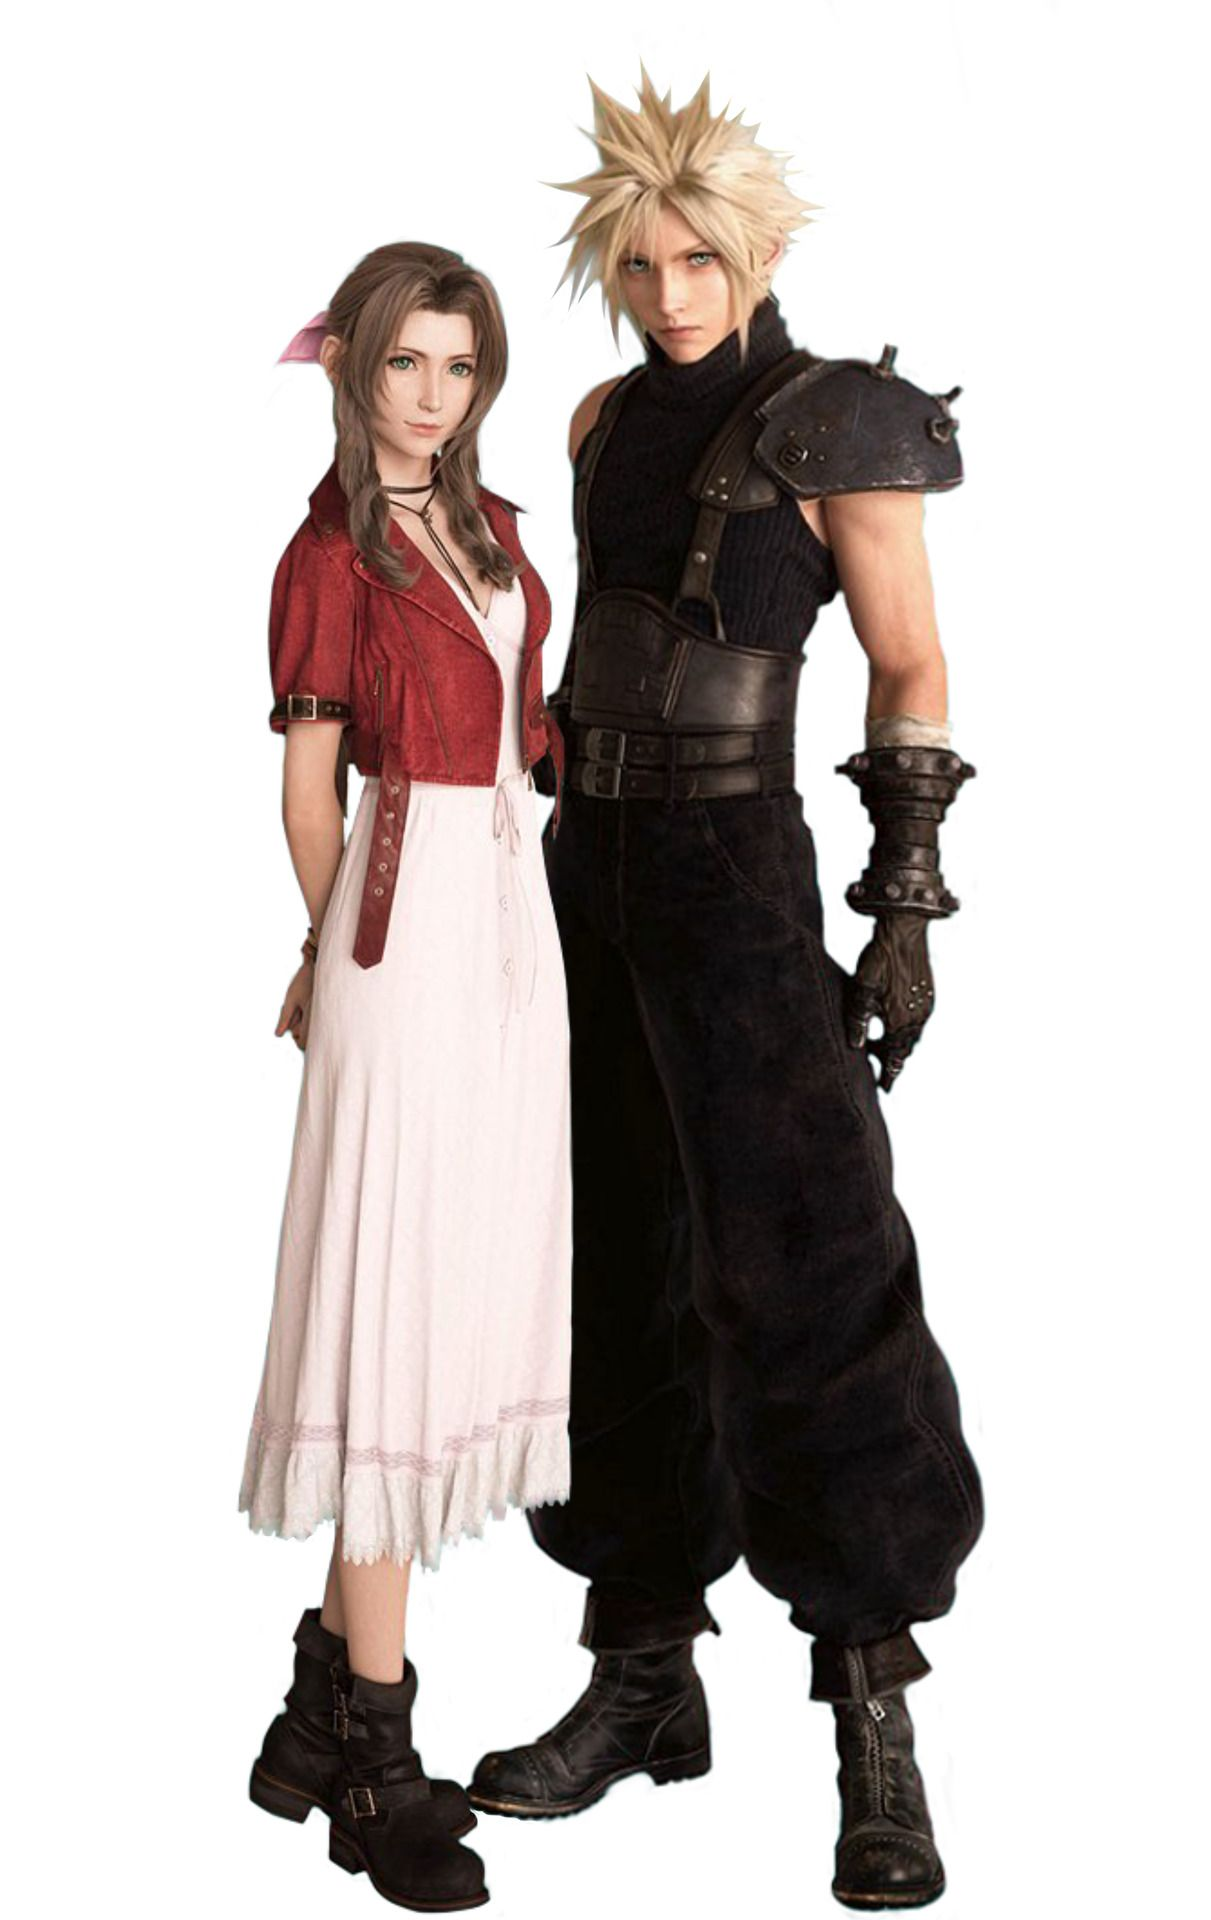 The Lq Renders Of Cloud And Aerith From The Most Recent